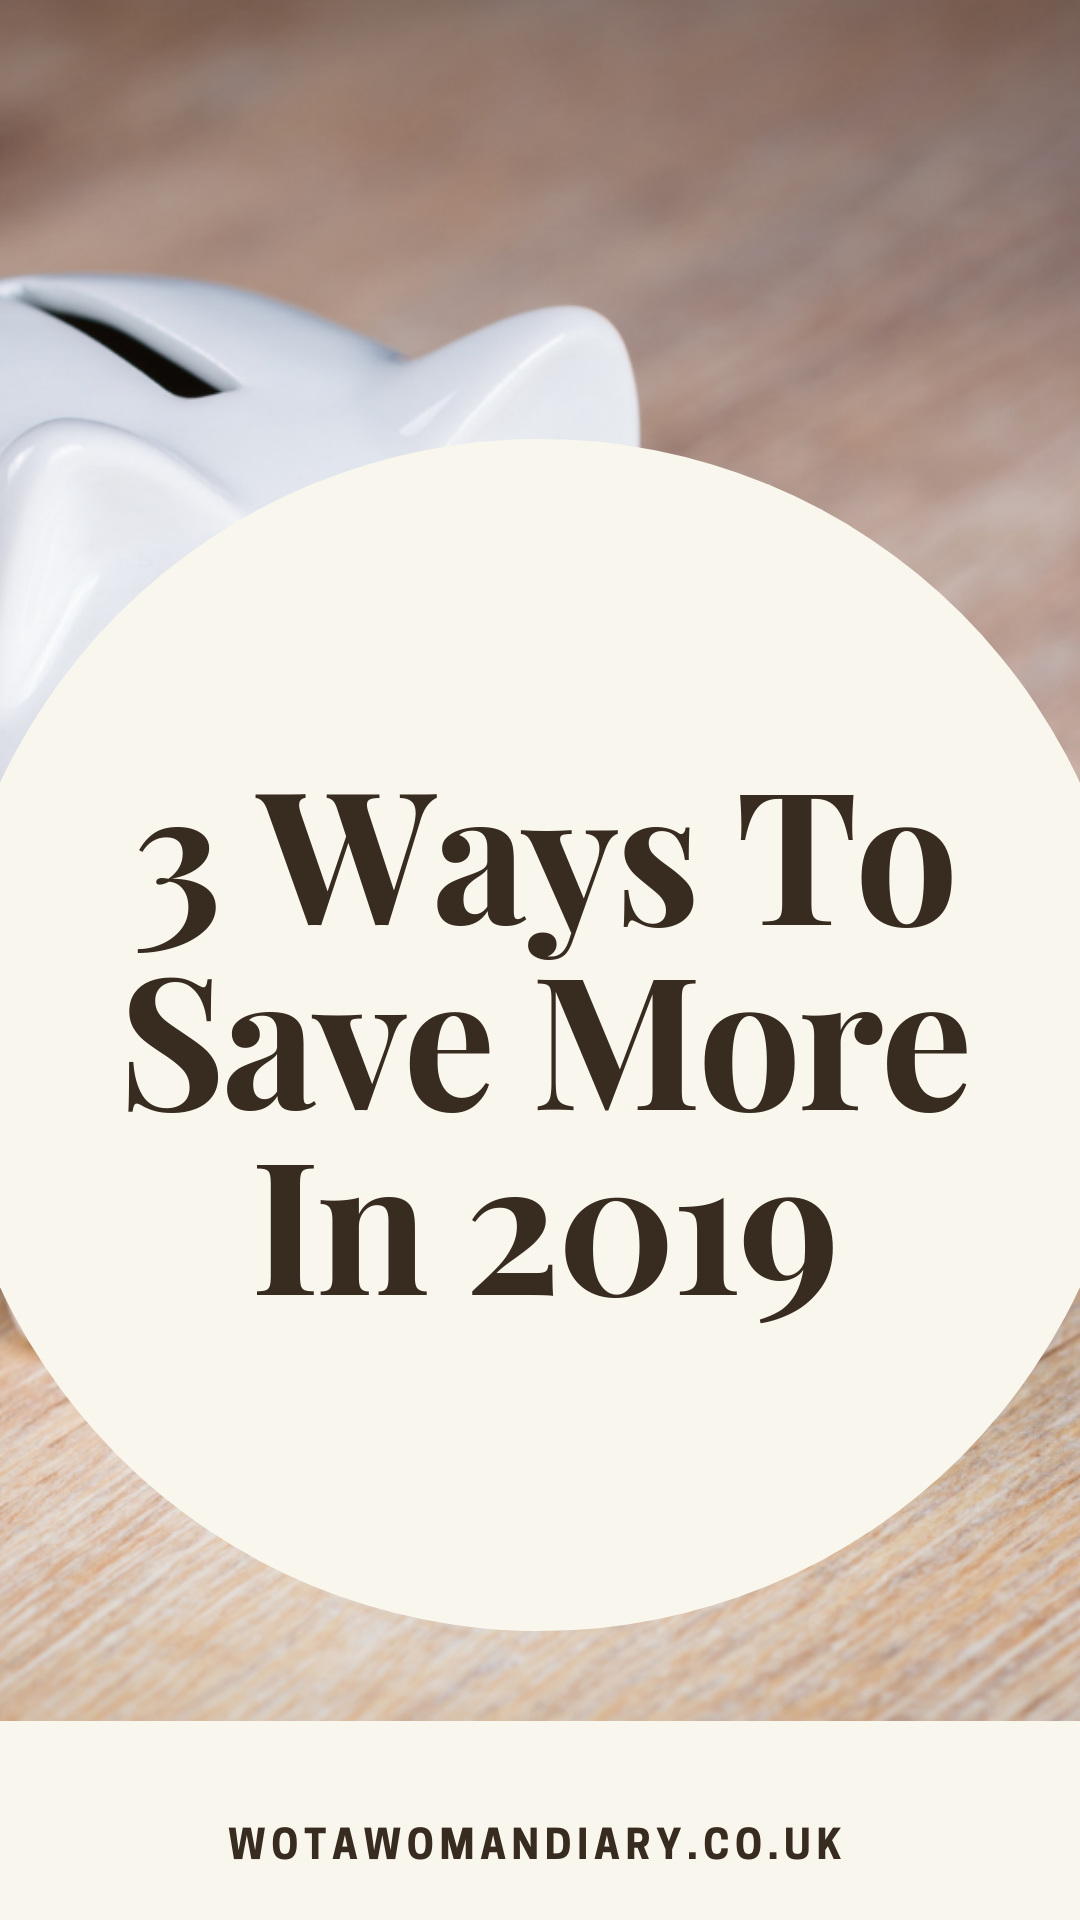 3 ways to save more in 2019 text image for pinterest